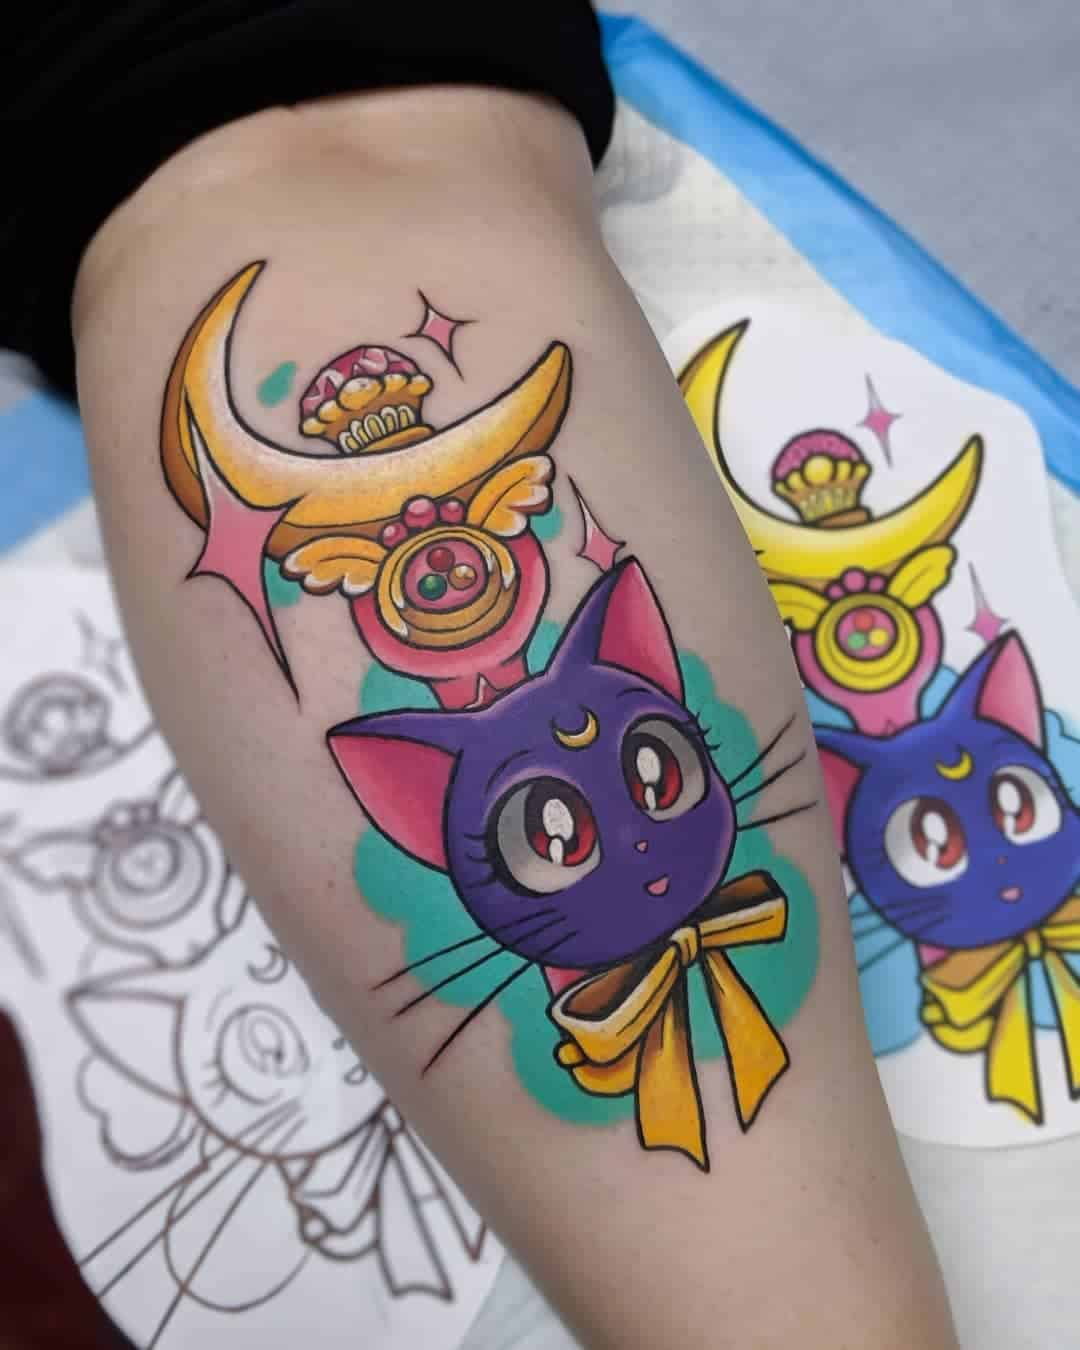 luna sailor moon tattoo on arm